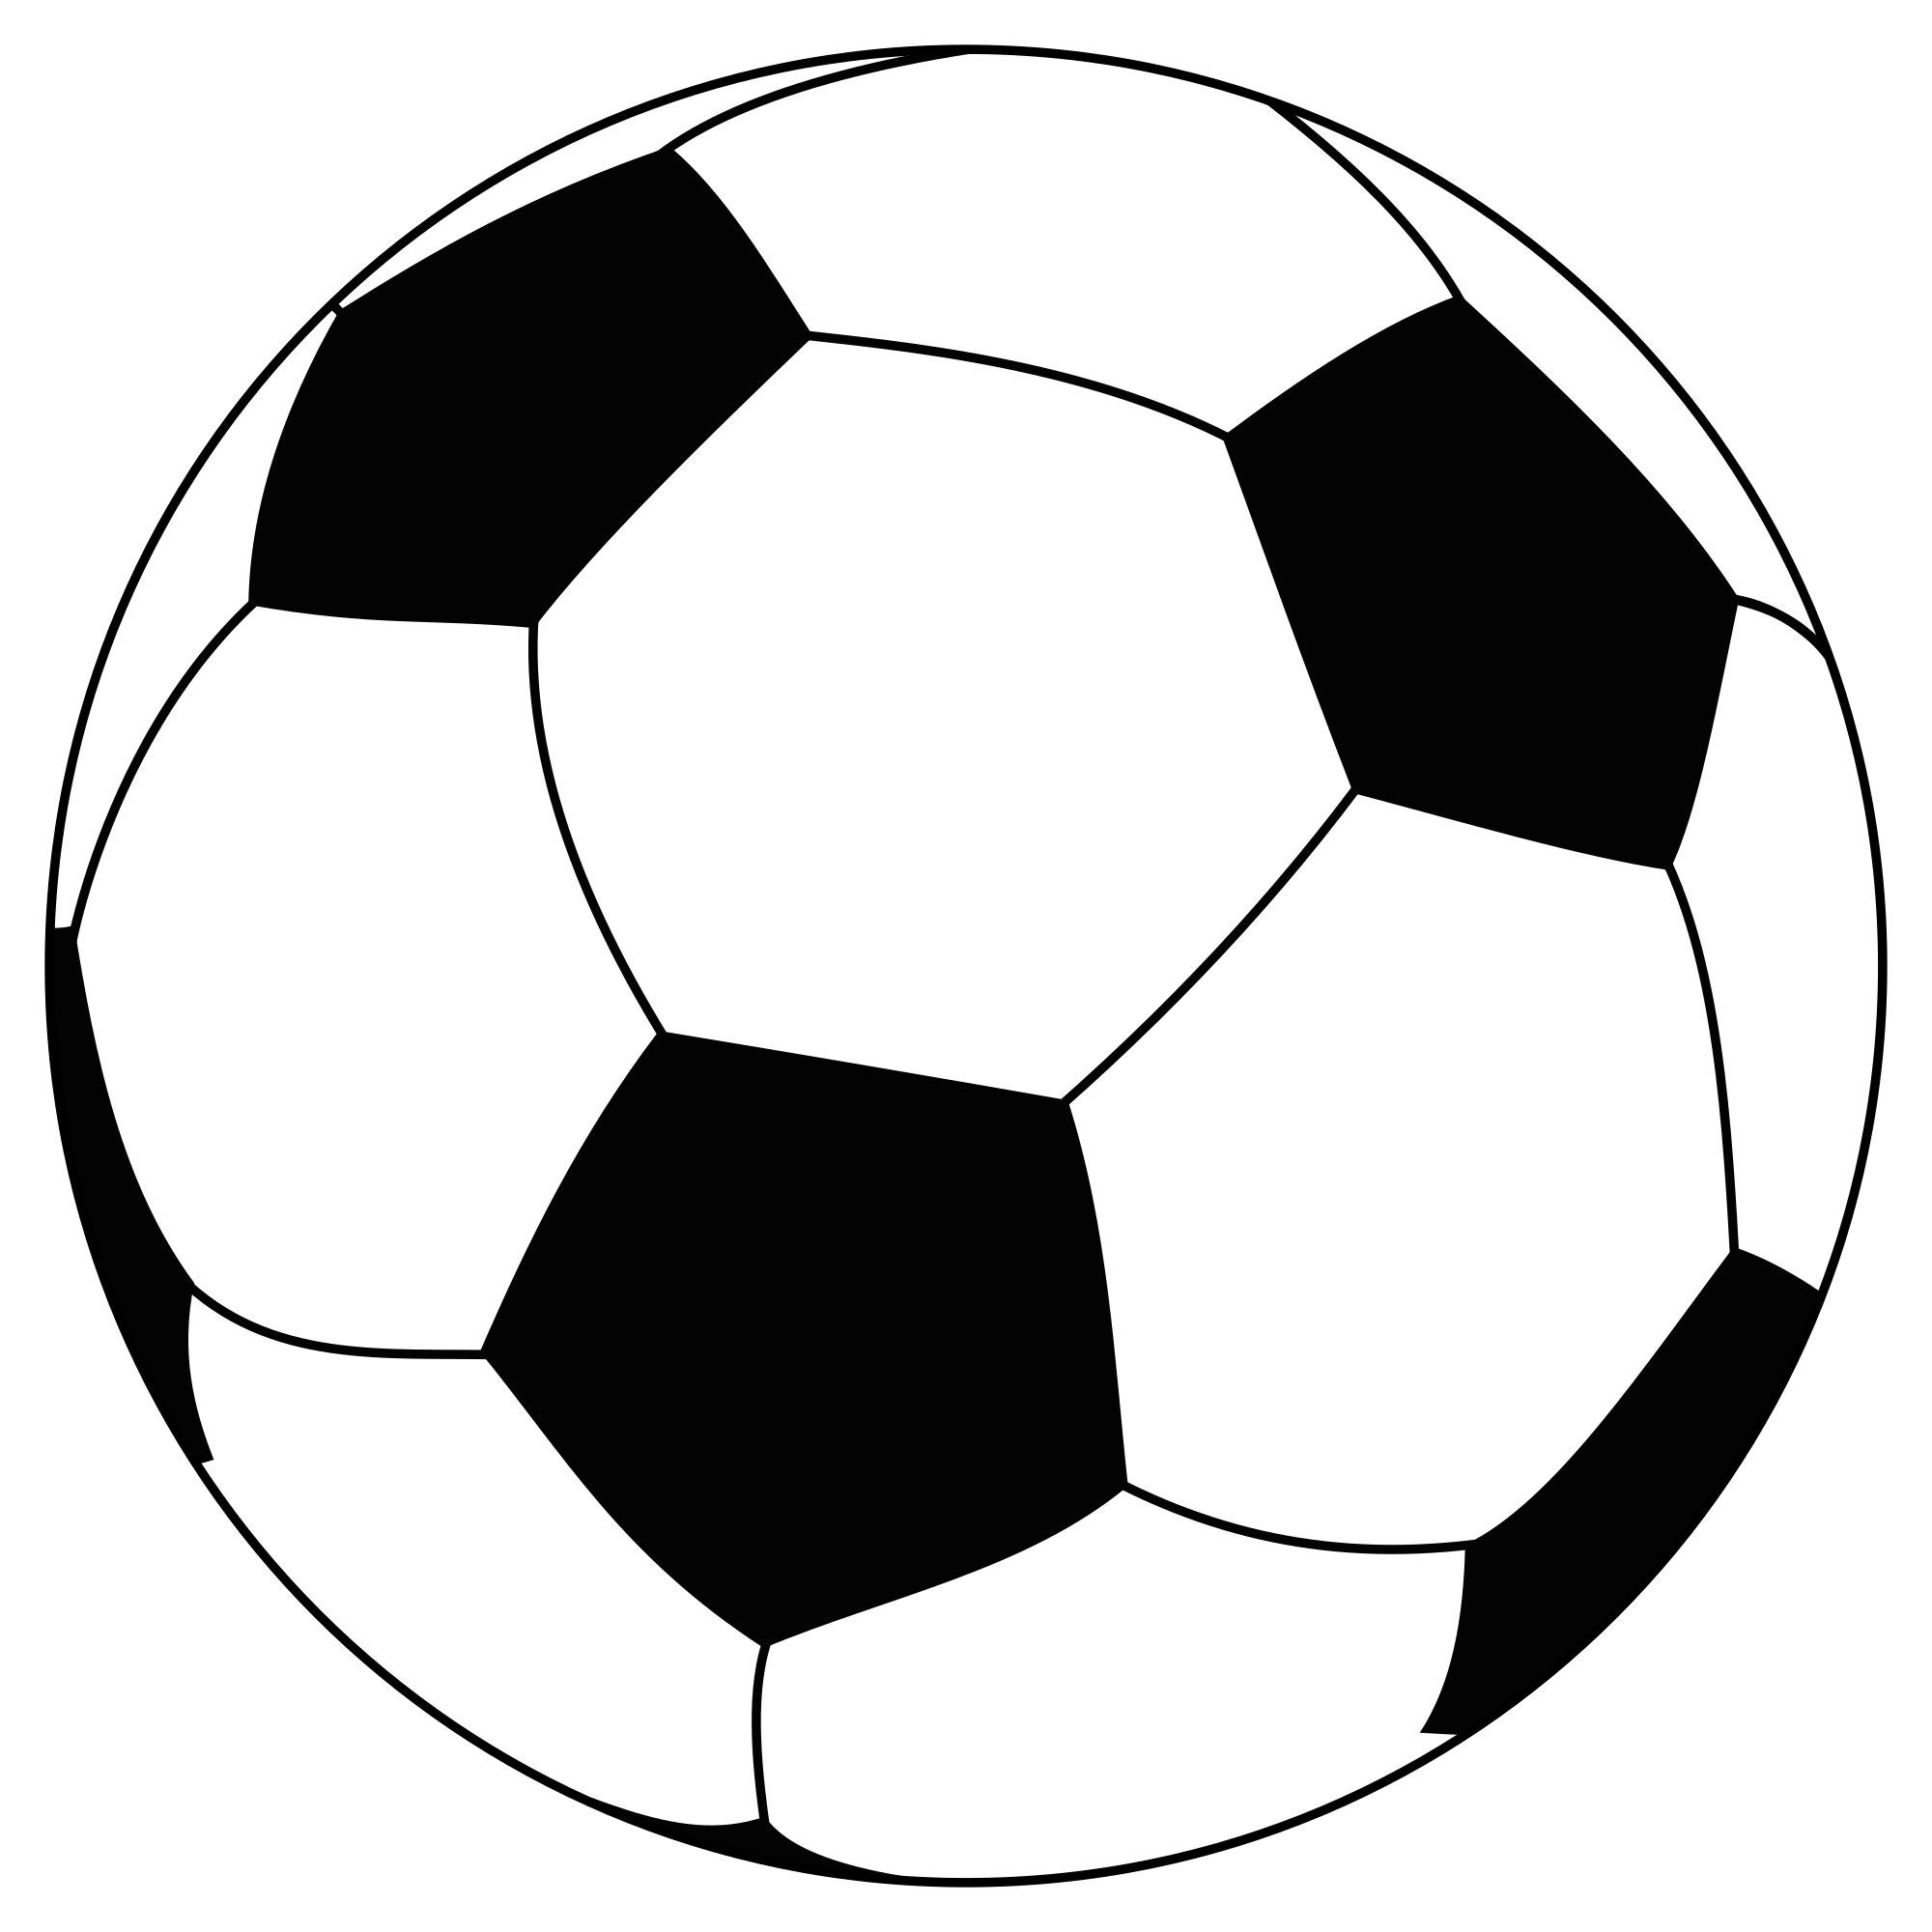 File:Soccerball.svg - Wikimedia Commons